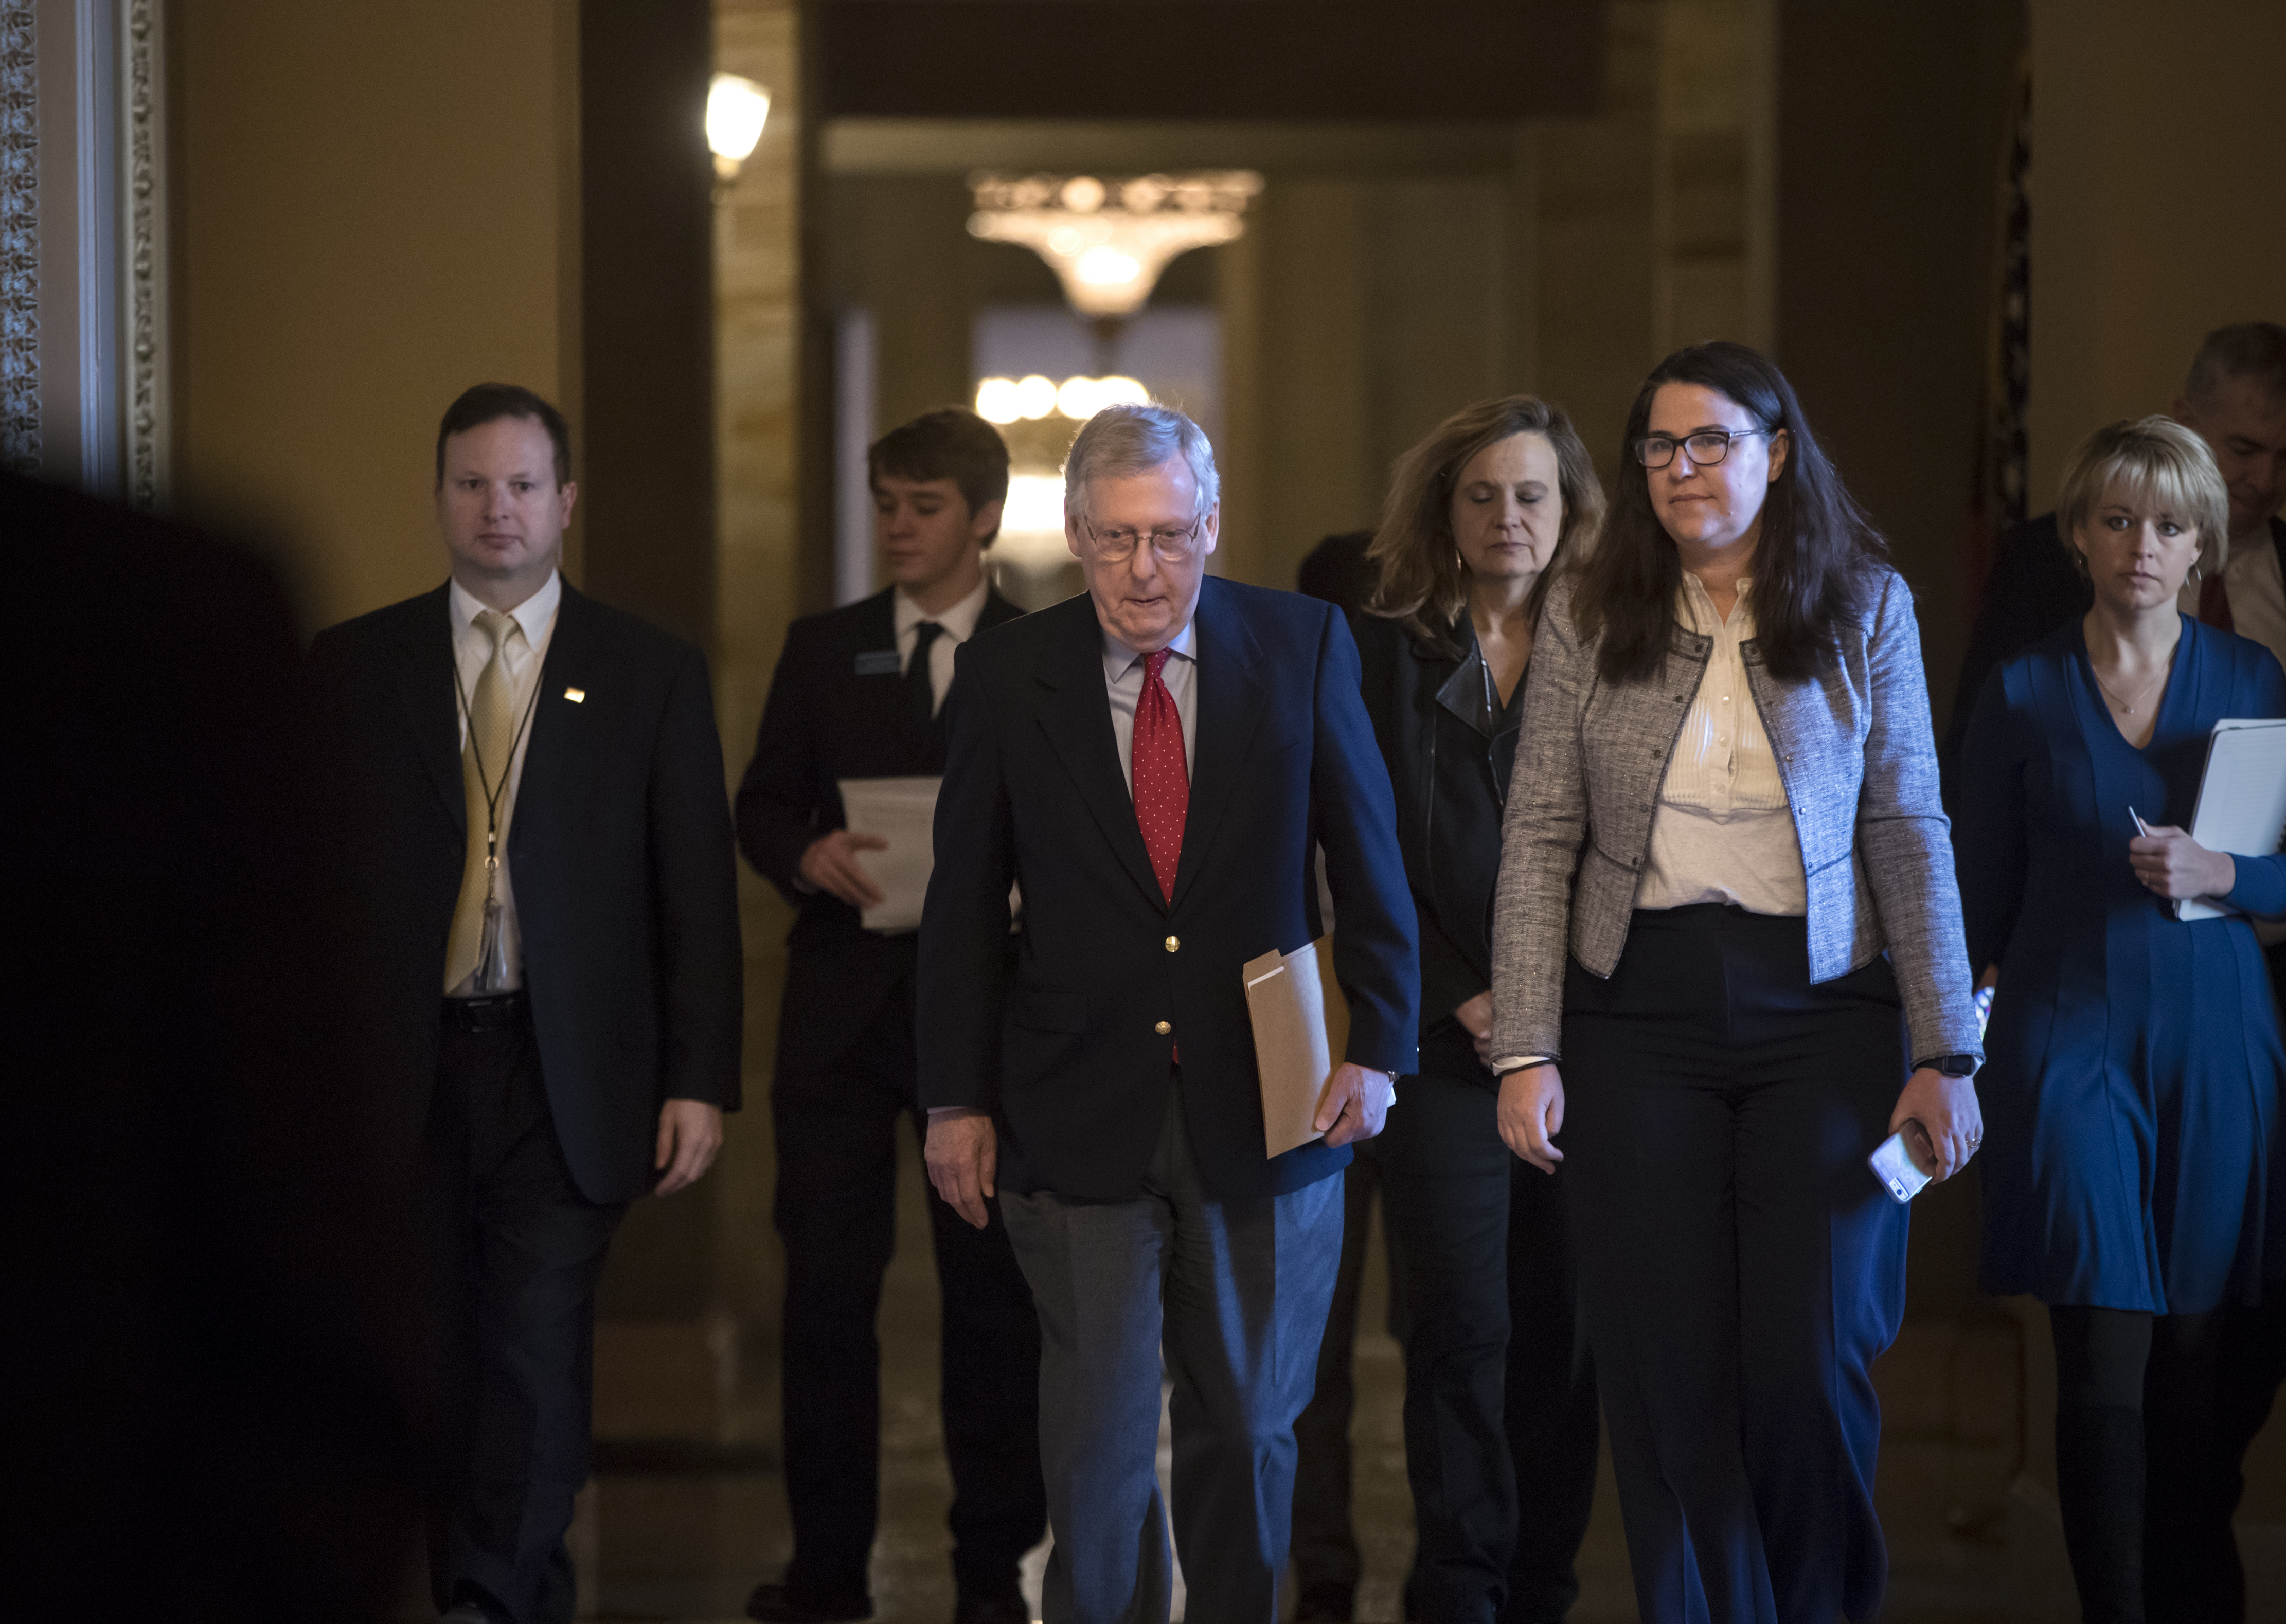 Senate Majority Leader Mitch McConnell, R-Kentucky, walks to the chamber on the first morning of a government shutdown after a divided Senate rejected a funding measure last night, at the Capitol in Washington, Jan. 20, 2018.